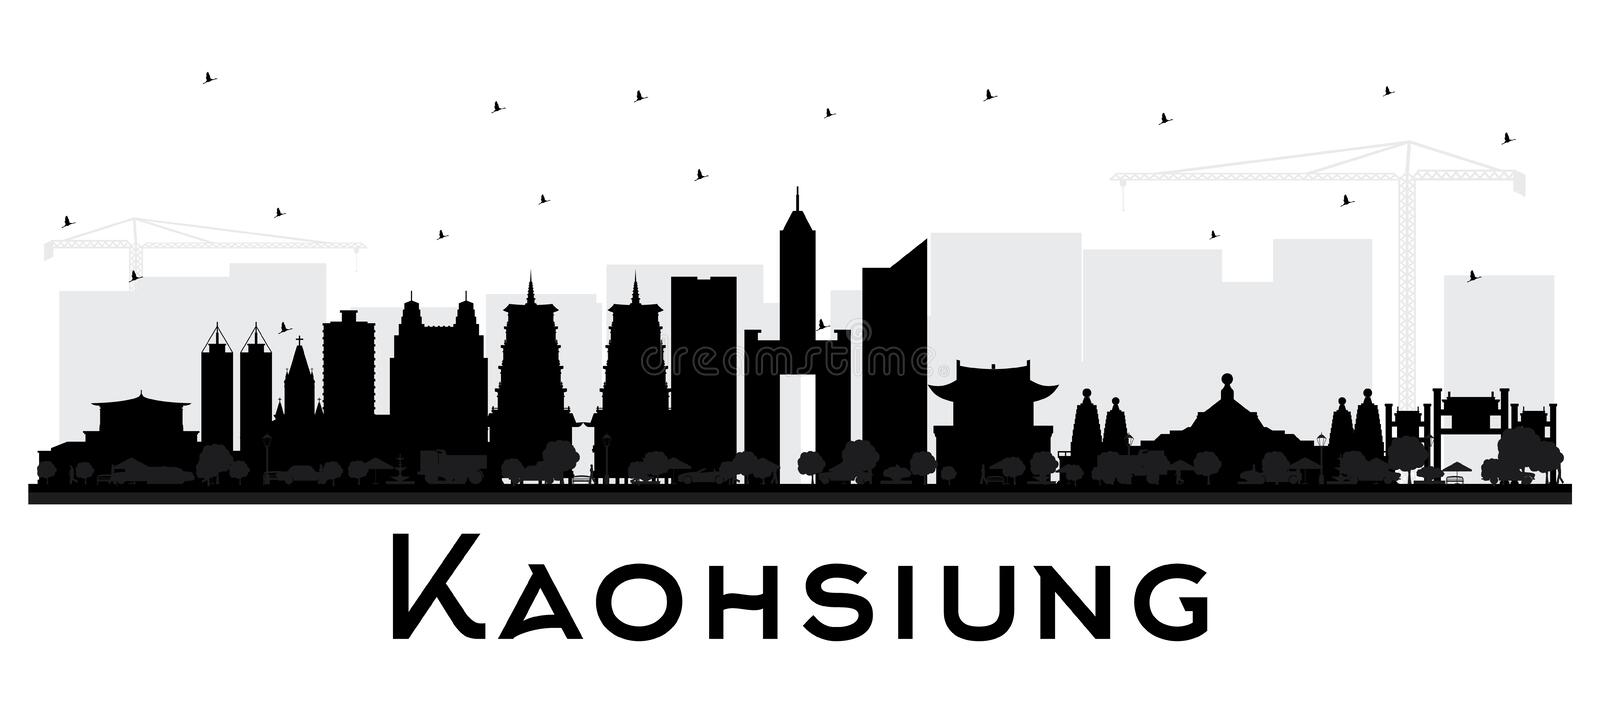 Kaohsiung Taiwan City Skyline Silhouette with Black Buildings Isolated on White. Vector Illustration. Business Travel and Tourism Concept with Historic vector illustration